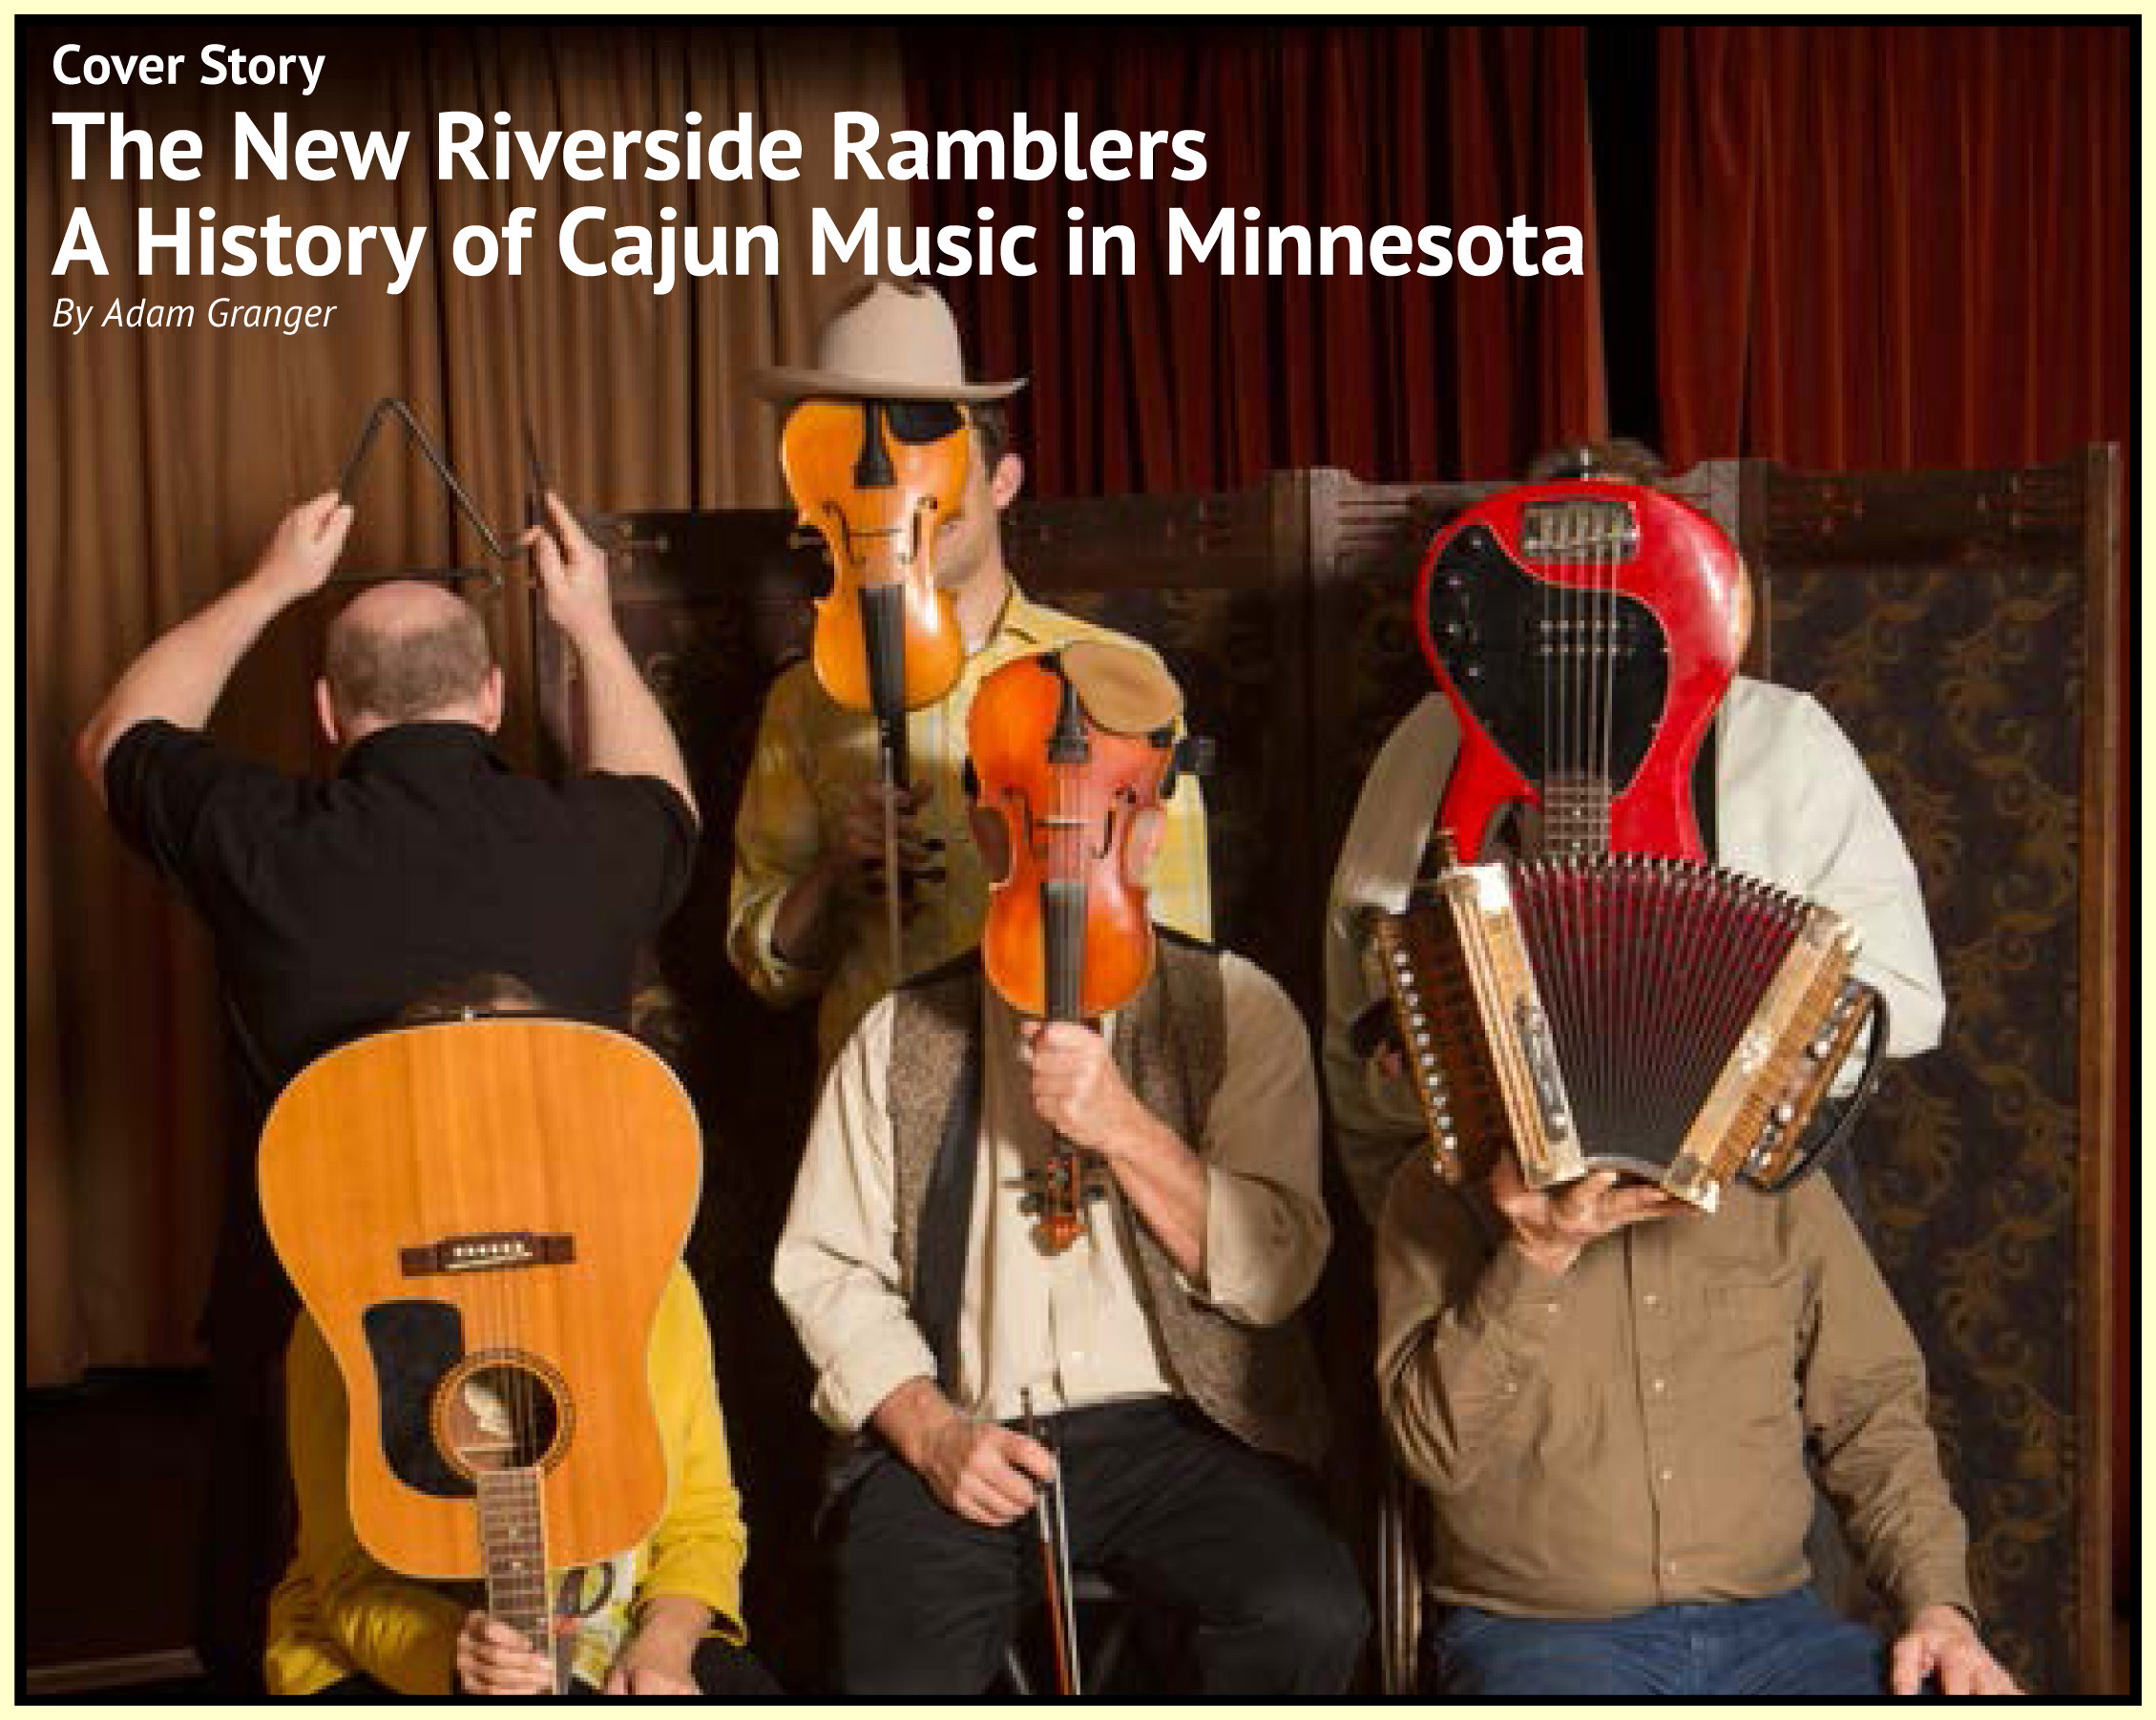 Article on New Riverside Ramblers in the Jan-Feb 2017 Issue of Minnesota Bluegrass Magazine